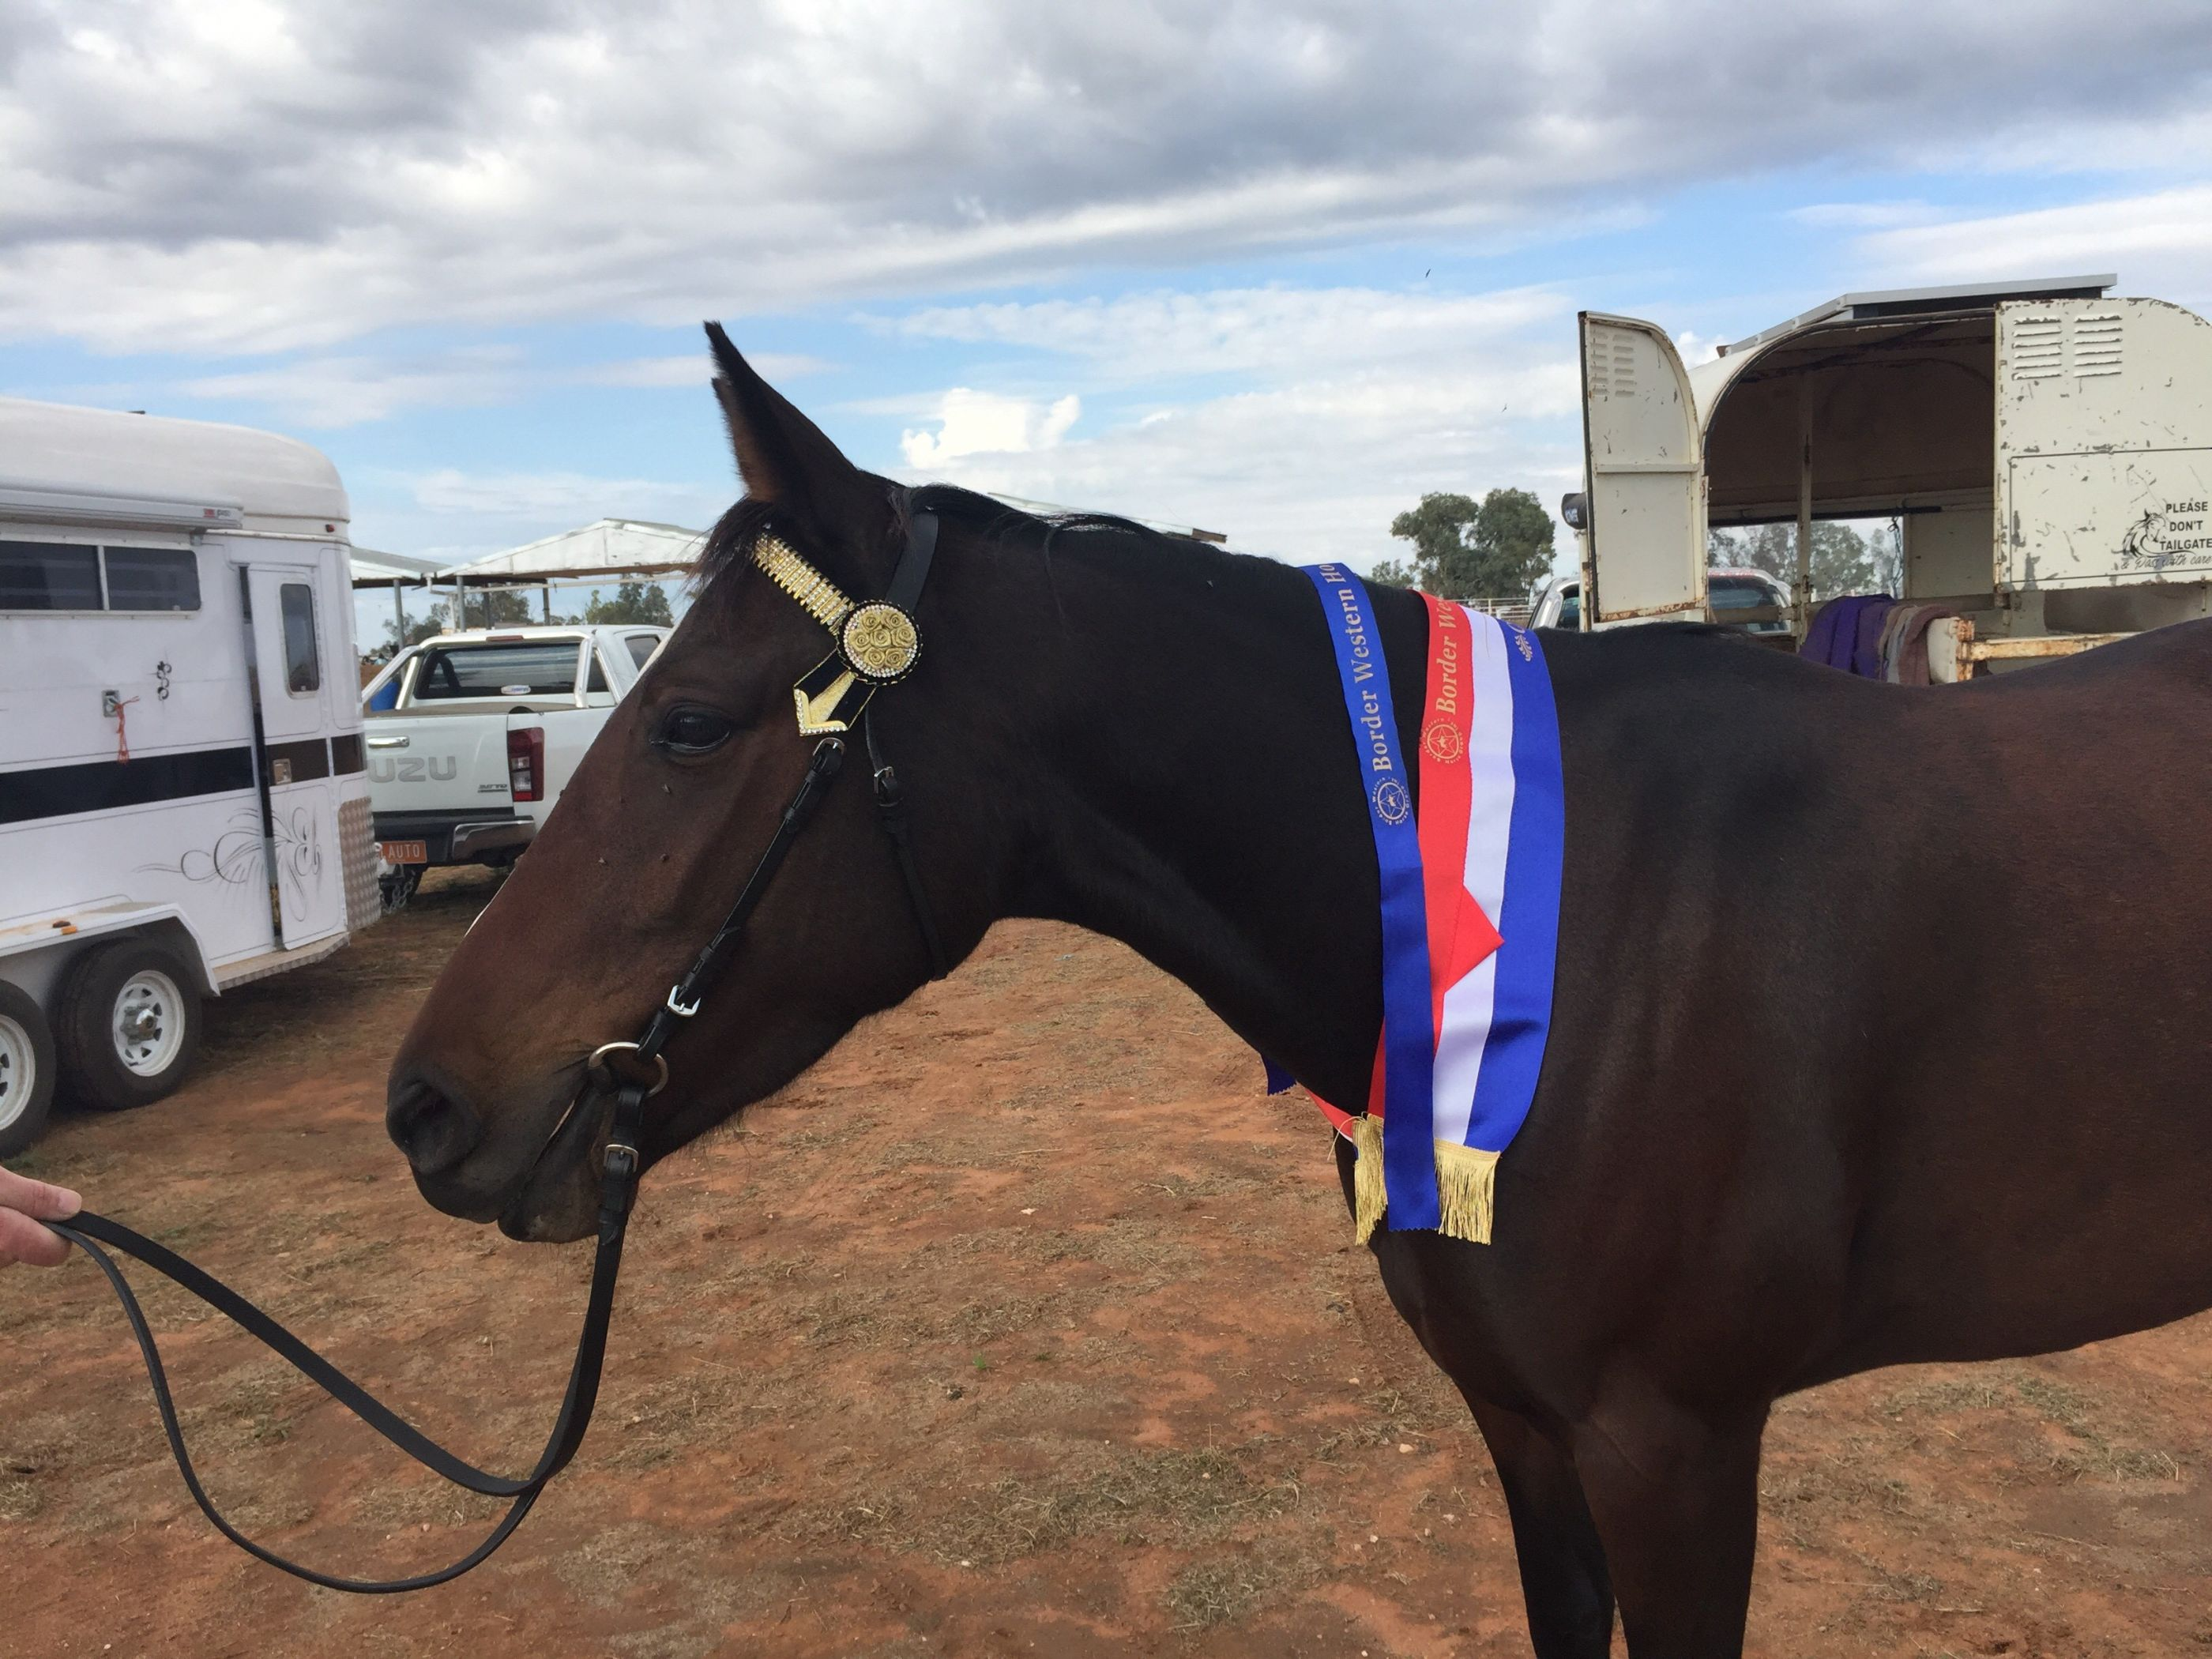 Saint Sonia 1st  Led Standardbred Mare and then Champion Led Standardbred -  Border Western Horse Club B Show 23/4/17